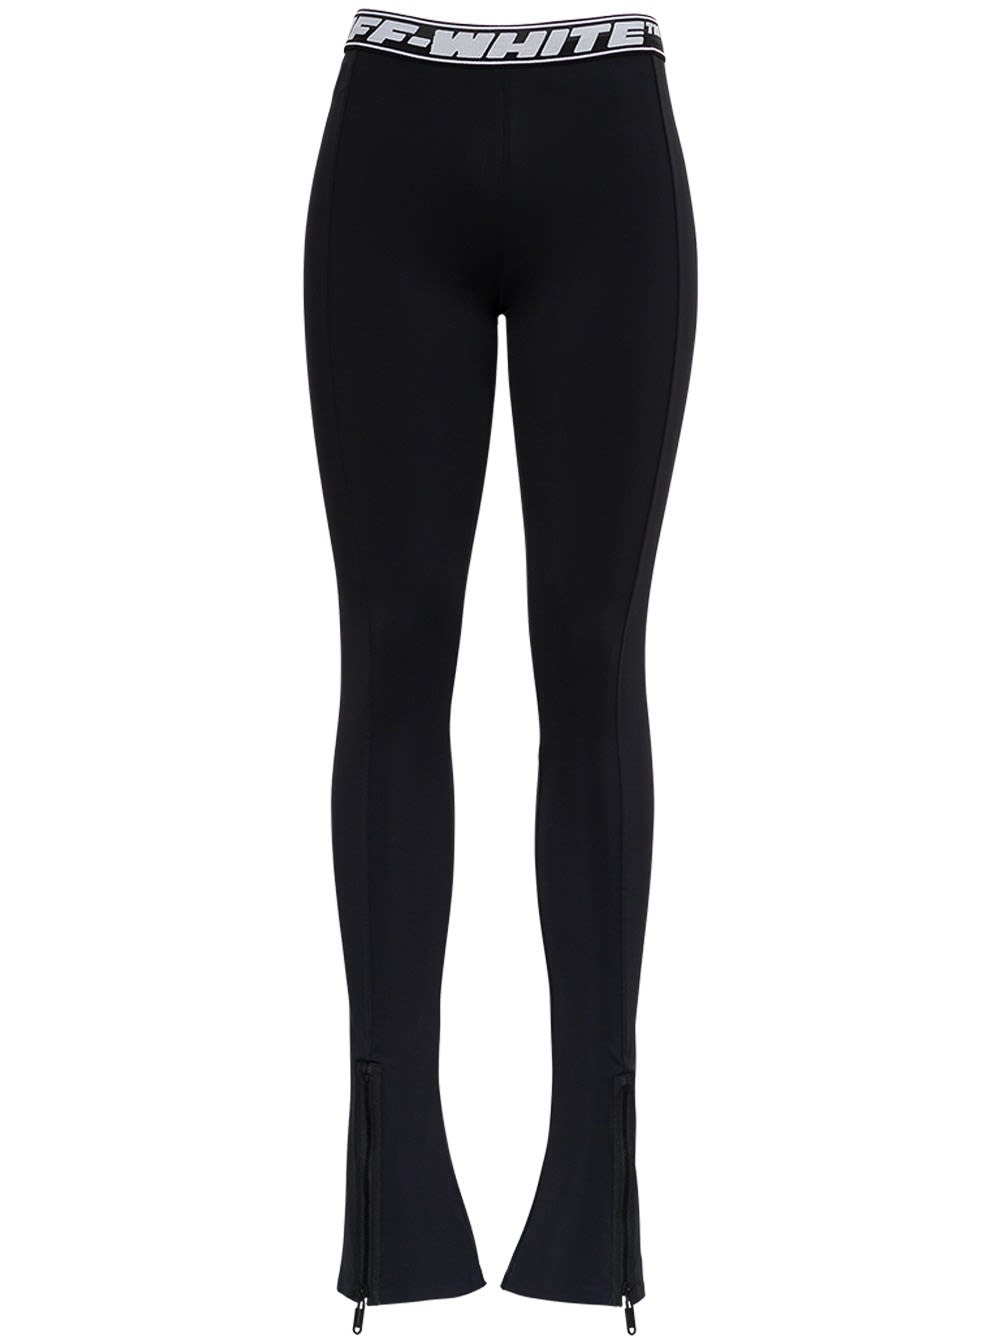 Off-White Leggings ATHLESURE LEGGINGS IN STRETCH FABRIC WITH LOGO